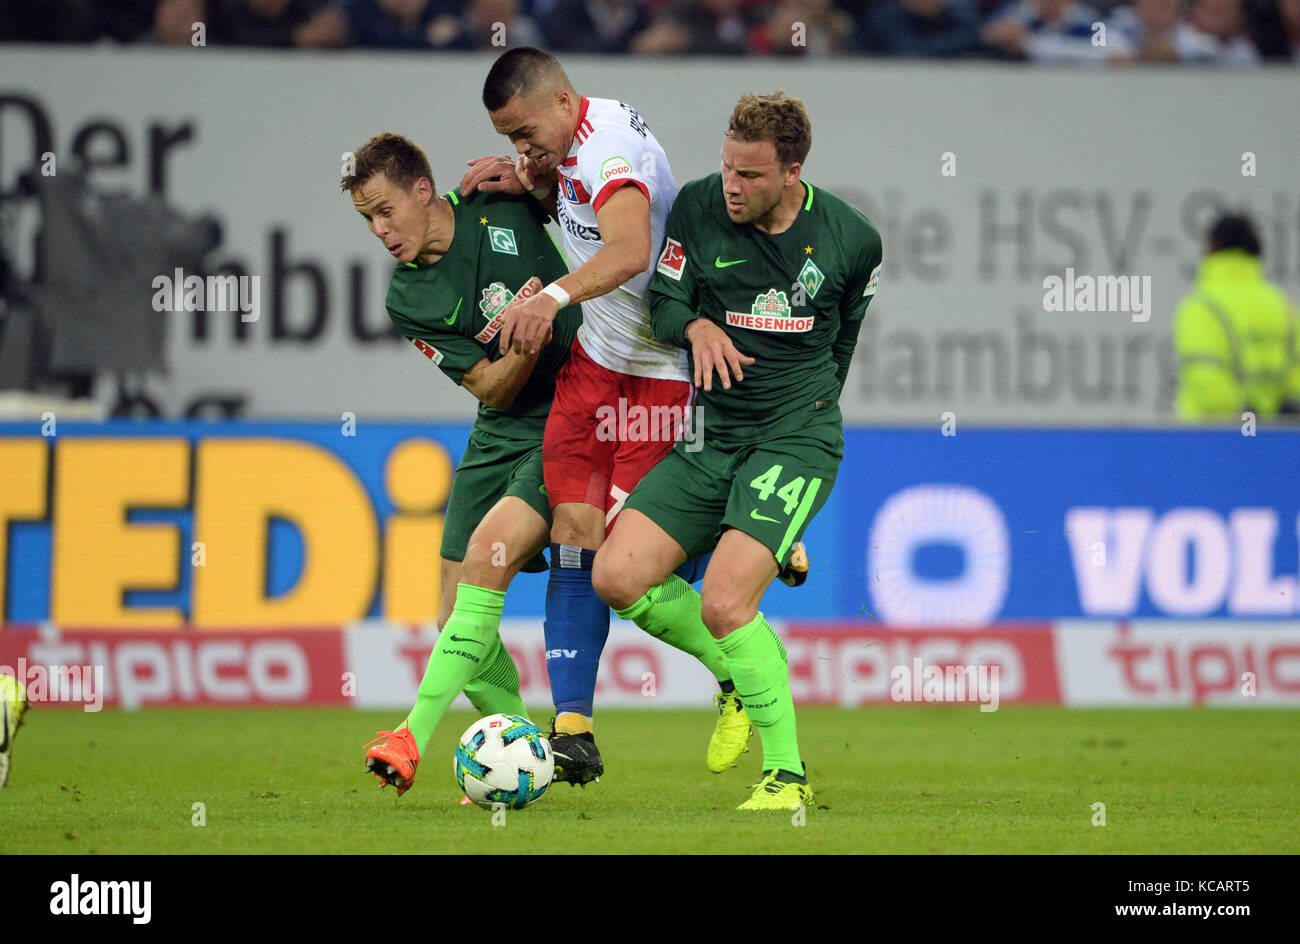 left to right: Niklas MOISANDER (HB), Bobby WOOD (HH), Philipp BARGFREDE (HB), duels, Aktion, Spielszene, Fussball - Stock Image